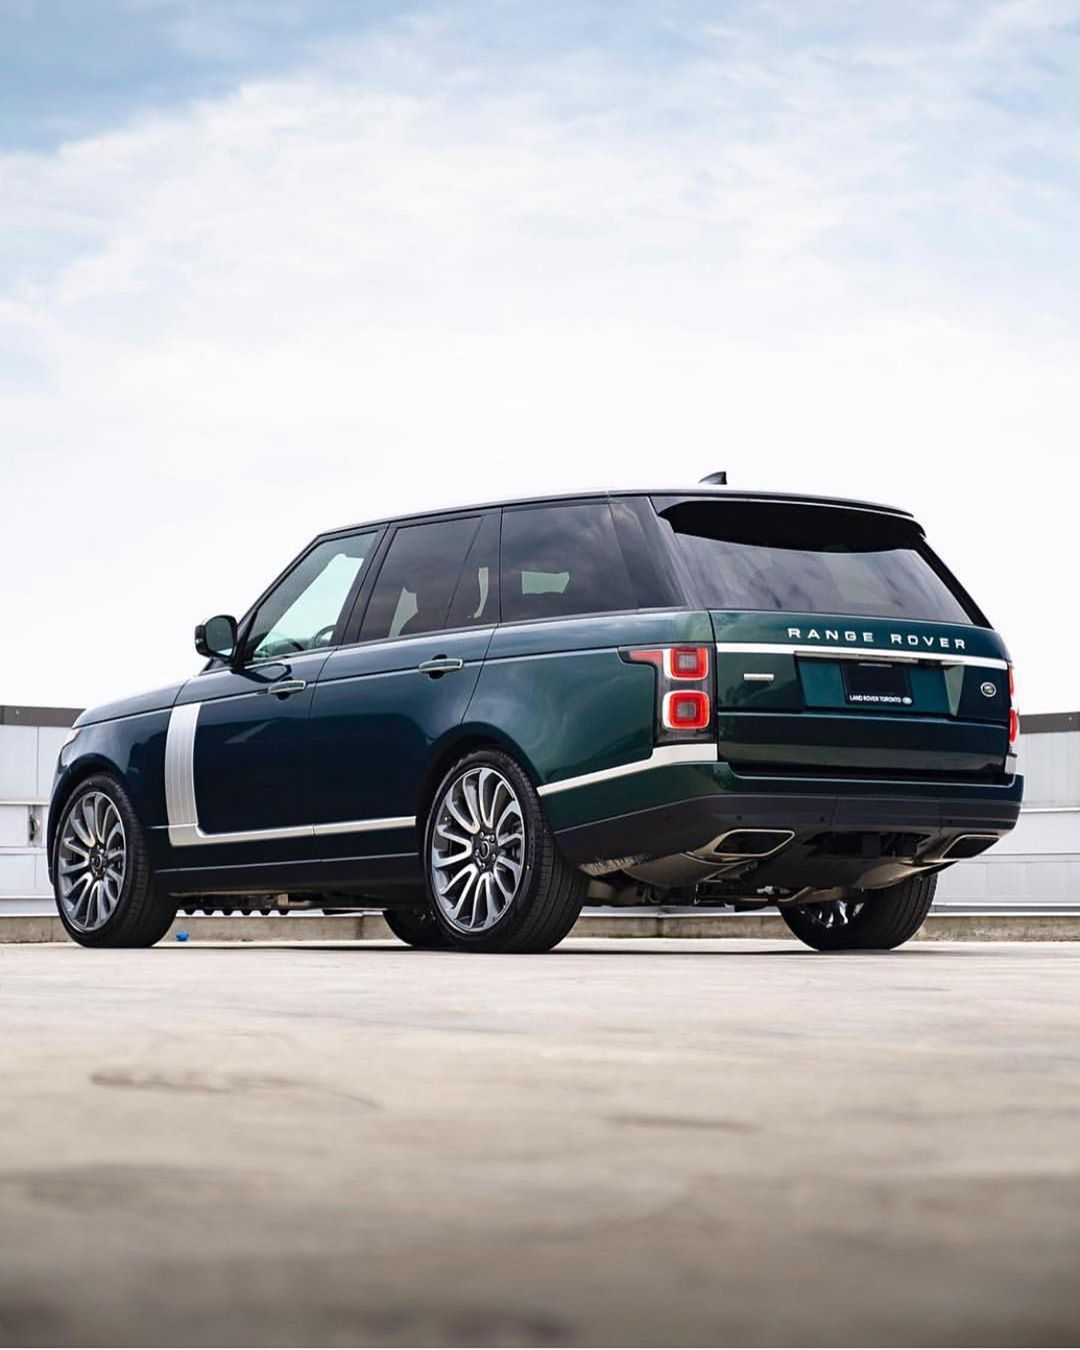 """?? Range Rover UAE ?? on Instagram: """"2019 Range Rover Autobiography is finished in Spectral British Racing Green with Vintage Tan Leather ? . . . . .  Repost from…"""""""